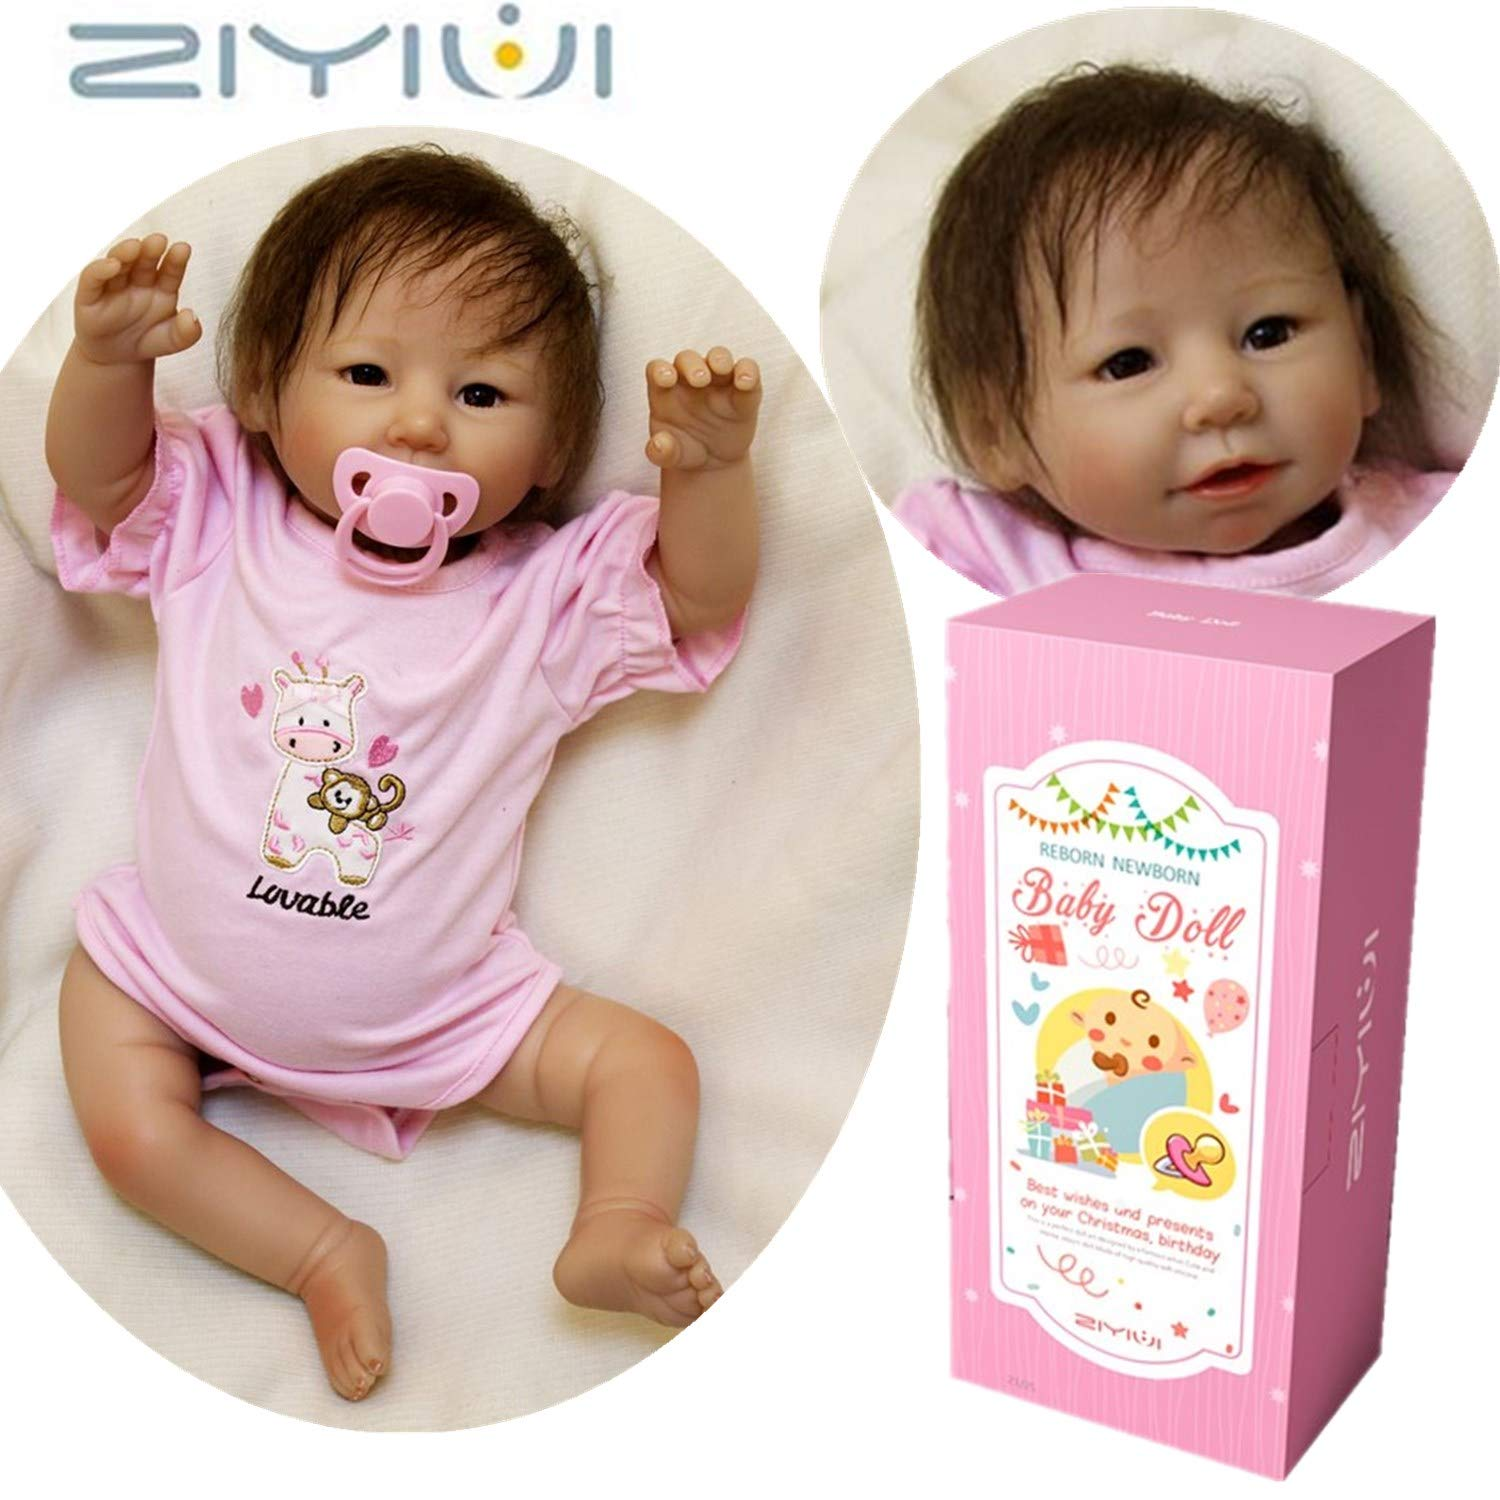 ZIYIUI Realistic Baby Dolls Reborn Babies Girl Lifelike Toddler Soft Silicone Newborn 20 inch Nurturing Dolls Magnetic Mouth Kids Toy